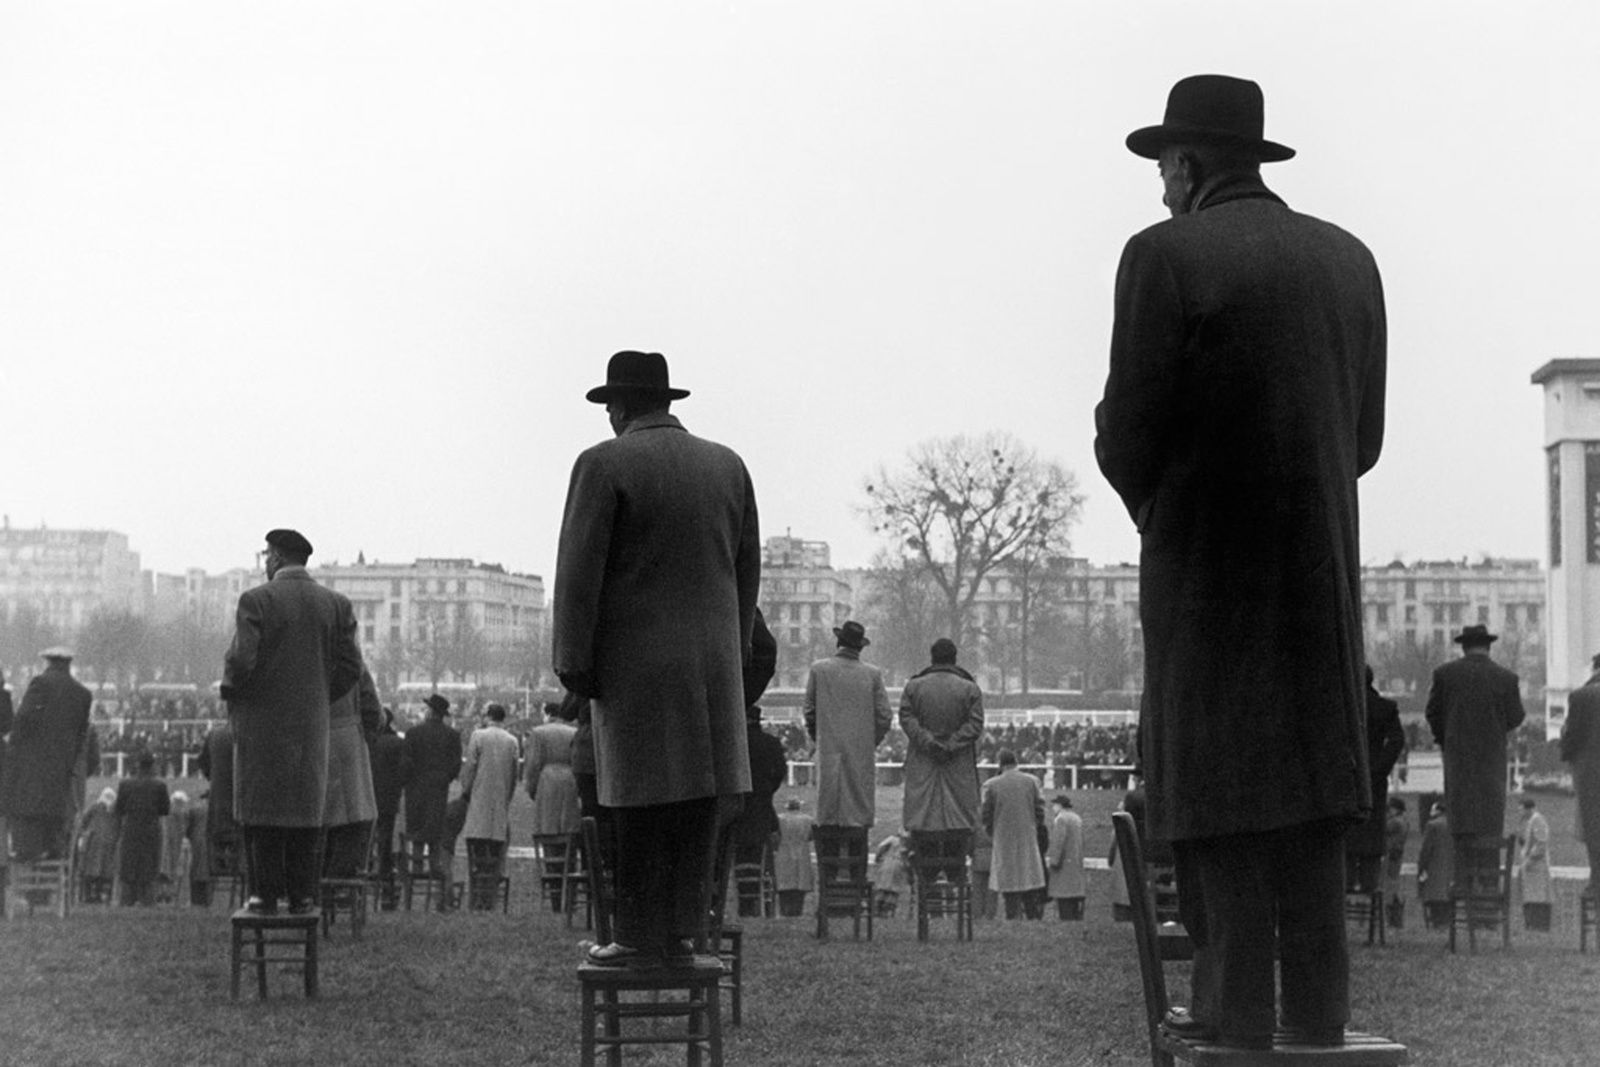 """Courses à Auteuil, Paris"", 1952 de Sabine WEISS - Courtesy les Douches la Galerie"